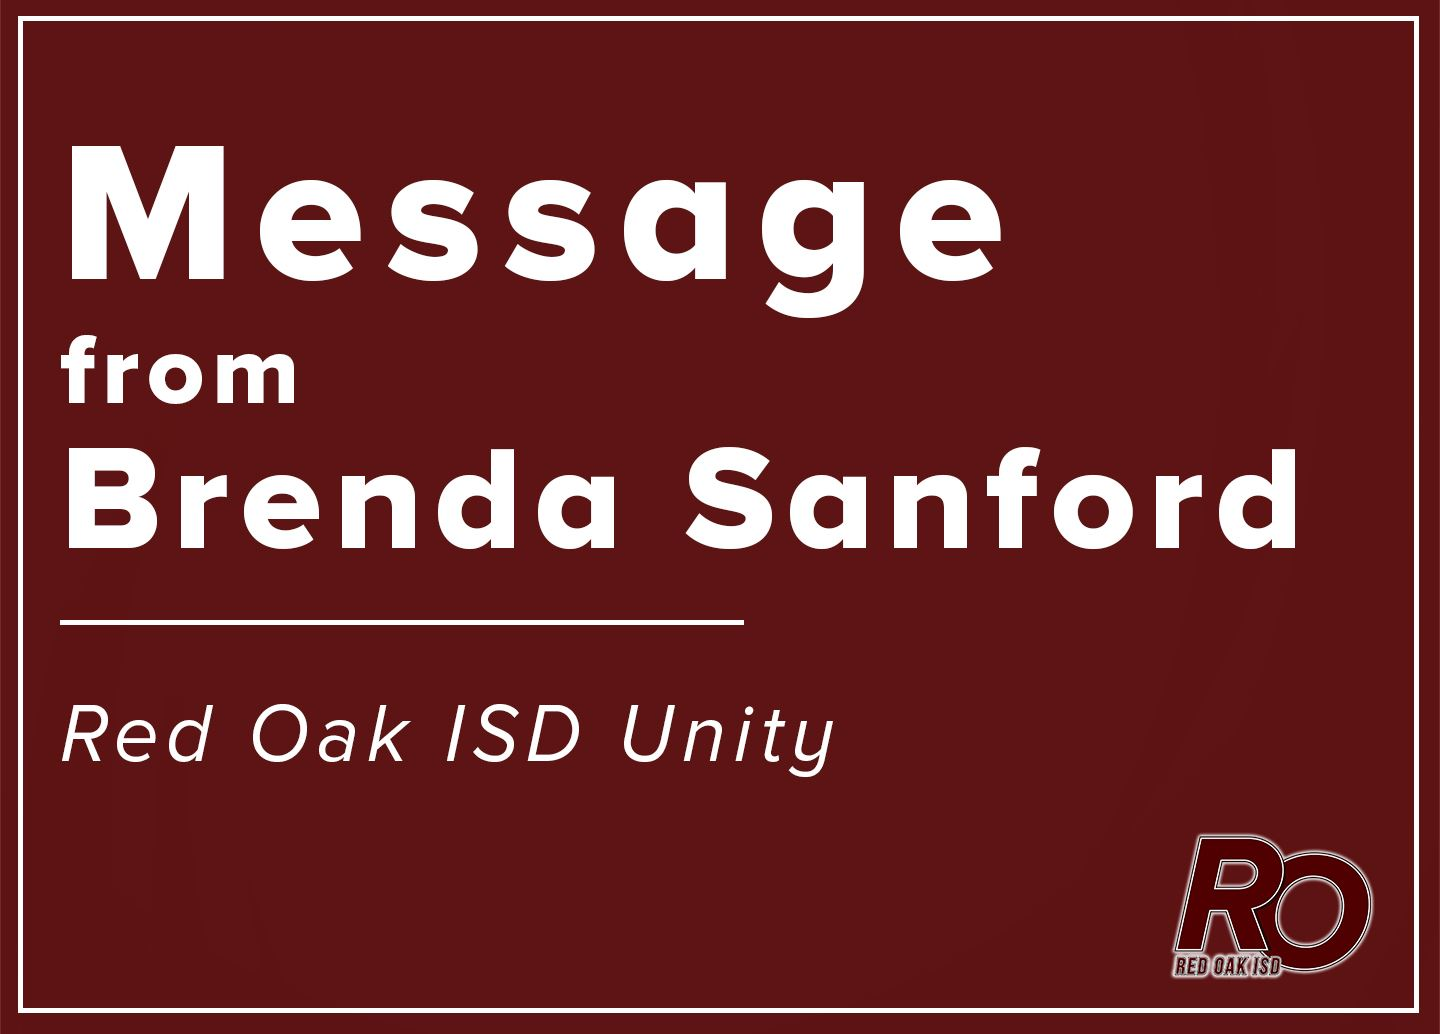 Message from Brenda Sanford about Red Oak ISD Unity